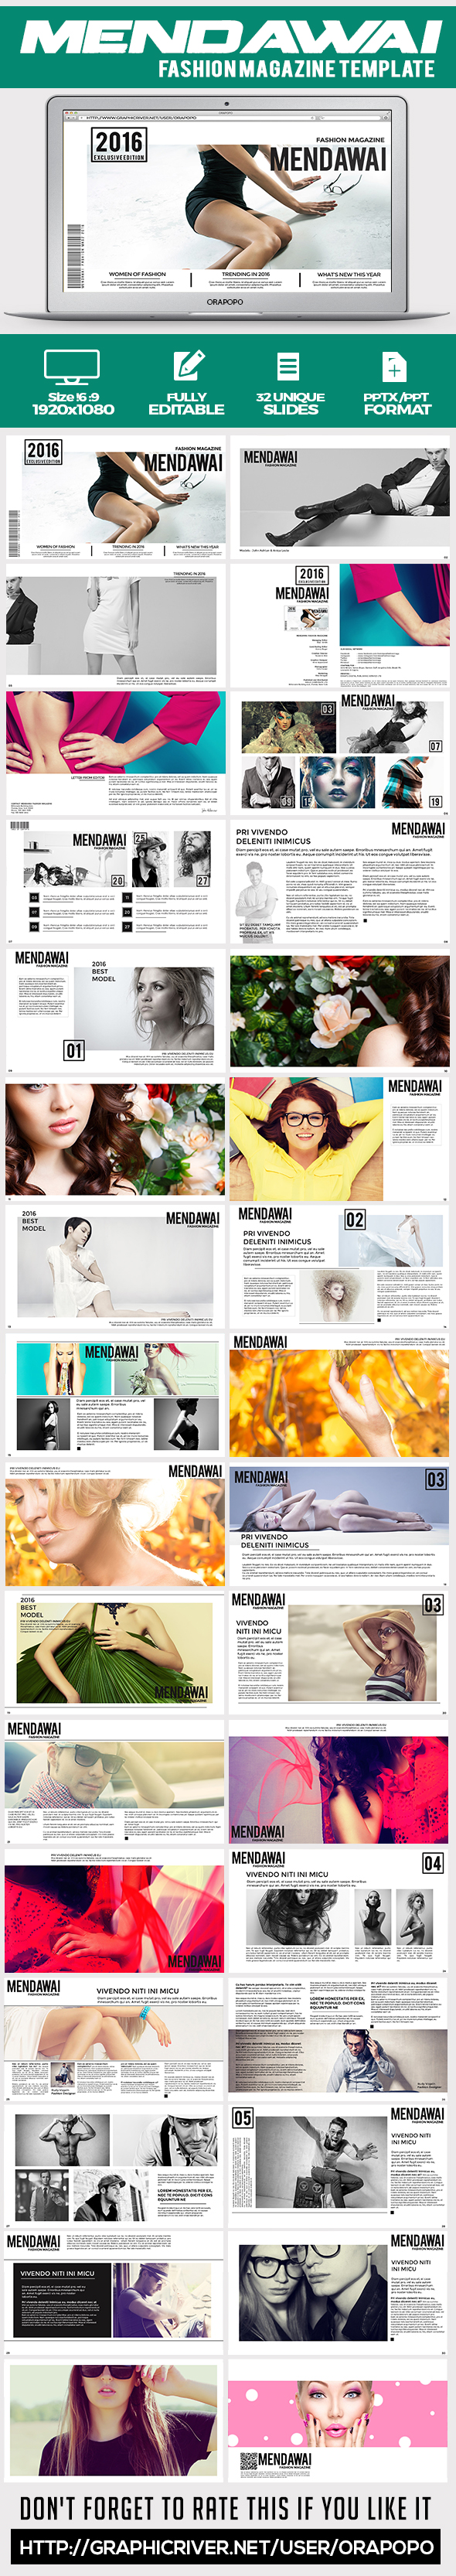 swiss design graphics, designs & templates from graphicriver, Powerpoint templates